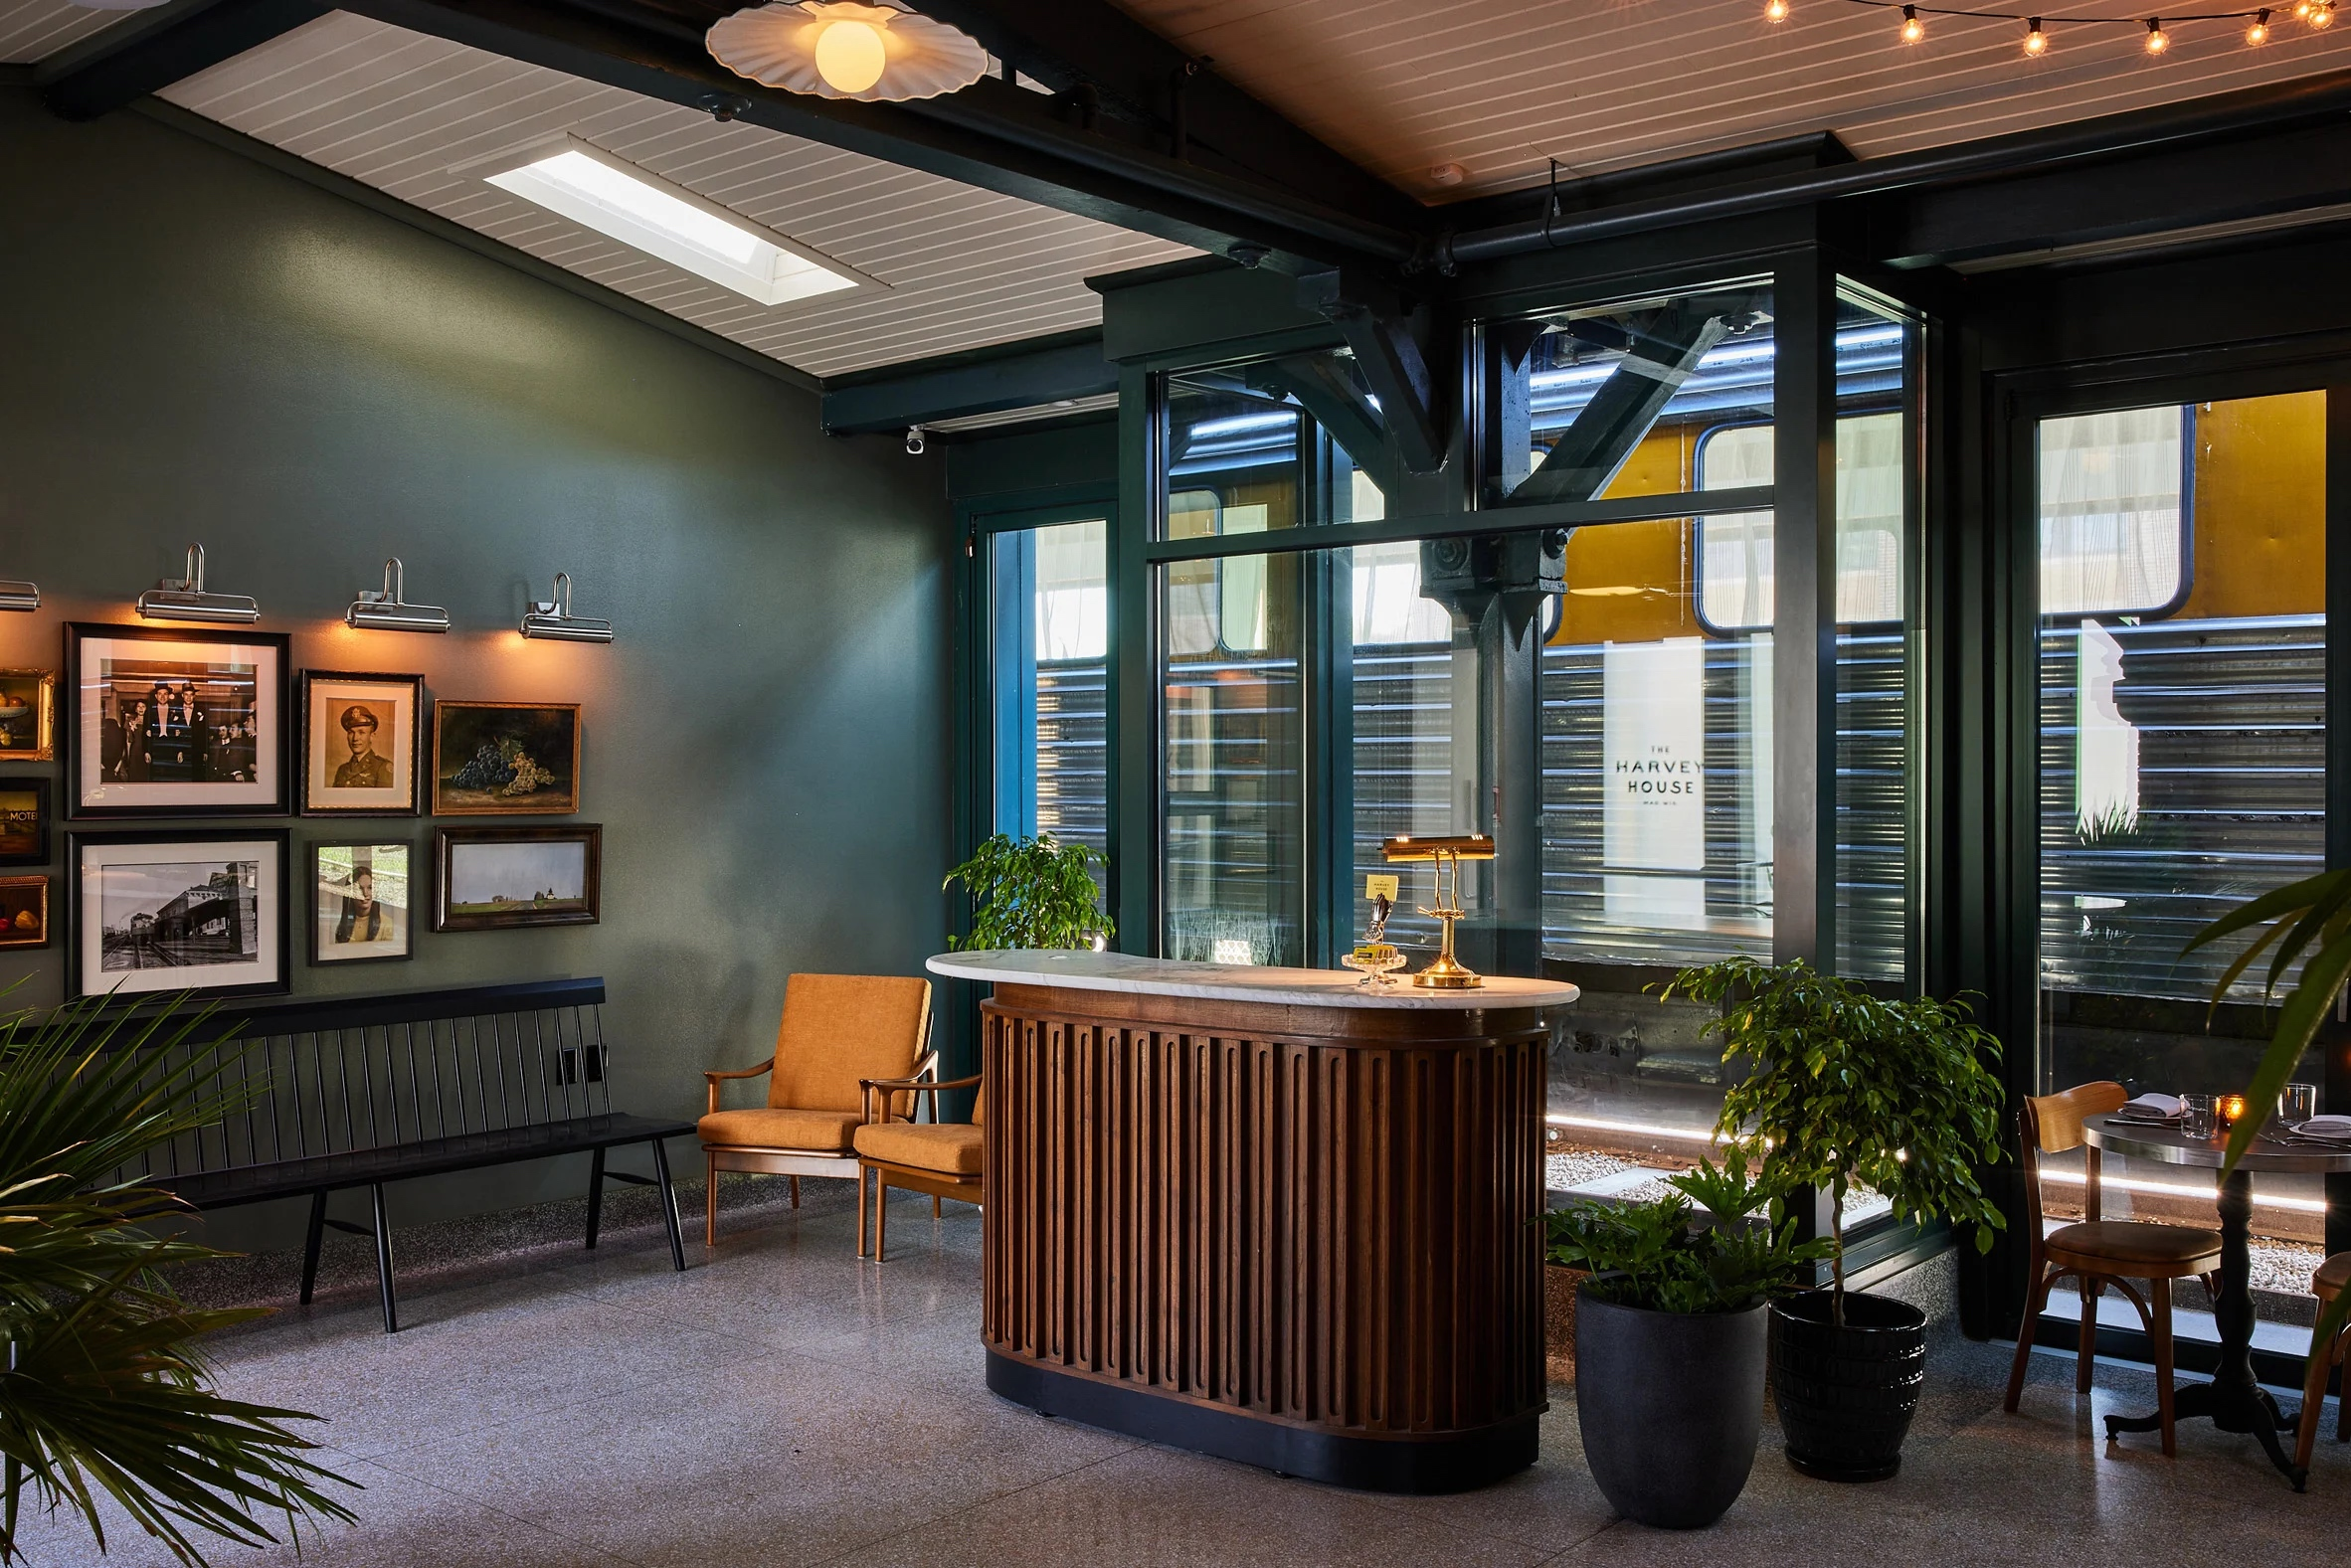 The colour palette reflects the golden age of the railway, with dark woods and heritage green shades